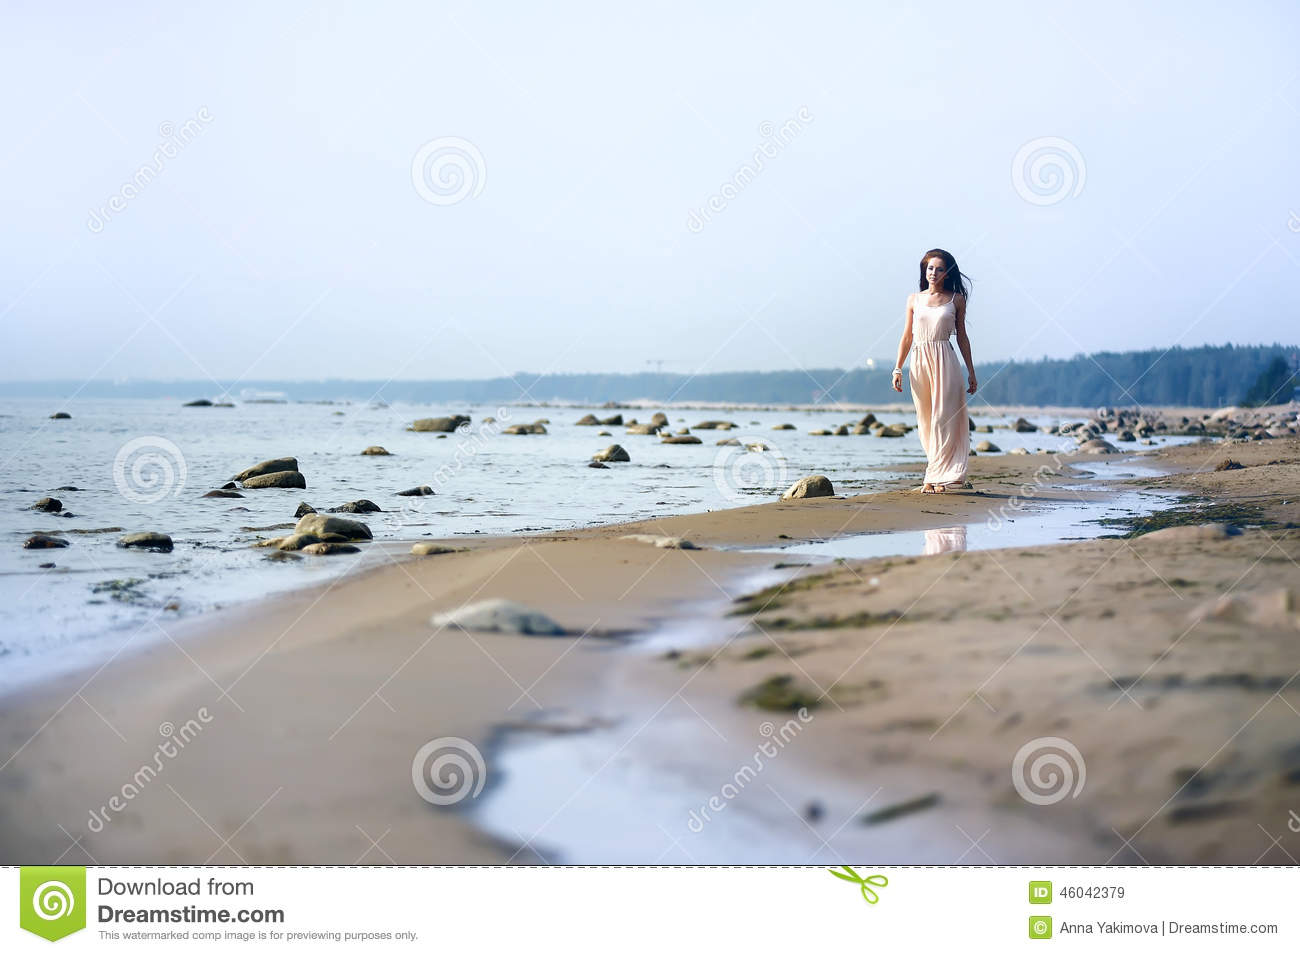 White dress by the shore - Woman In A Long Dress On The Shore